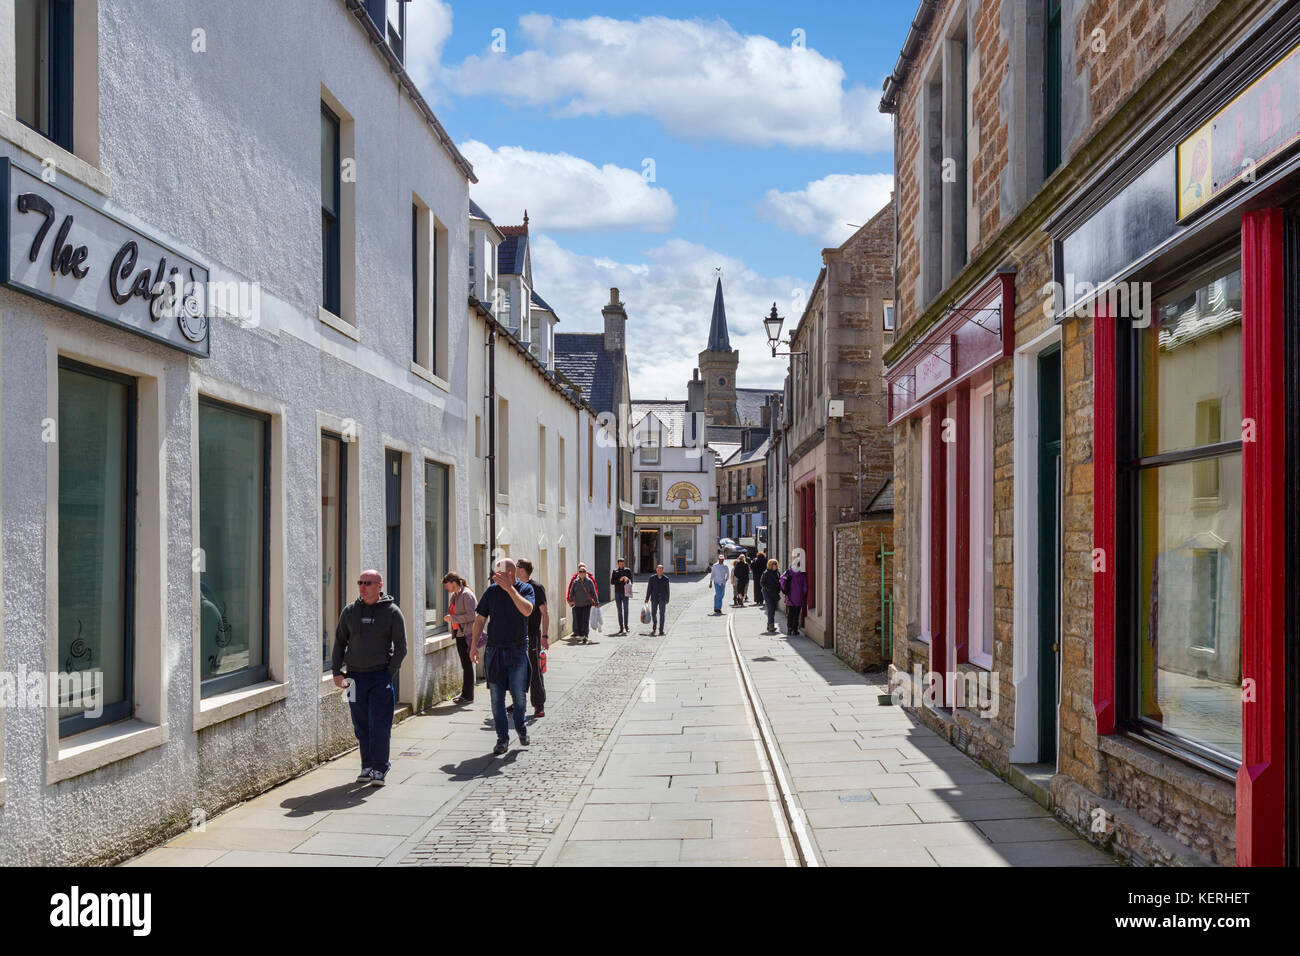 Shops on Victoria Street in the town centre, Stromness, Mainland, Orkney, Scotland, UK - Stock Image